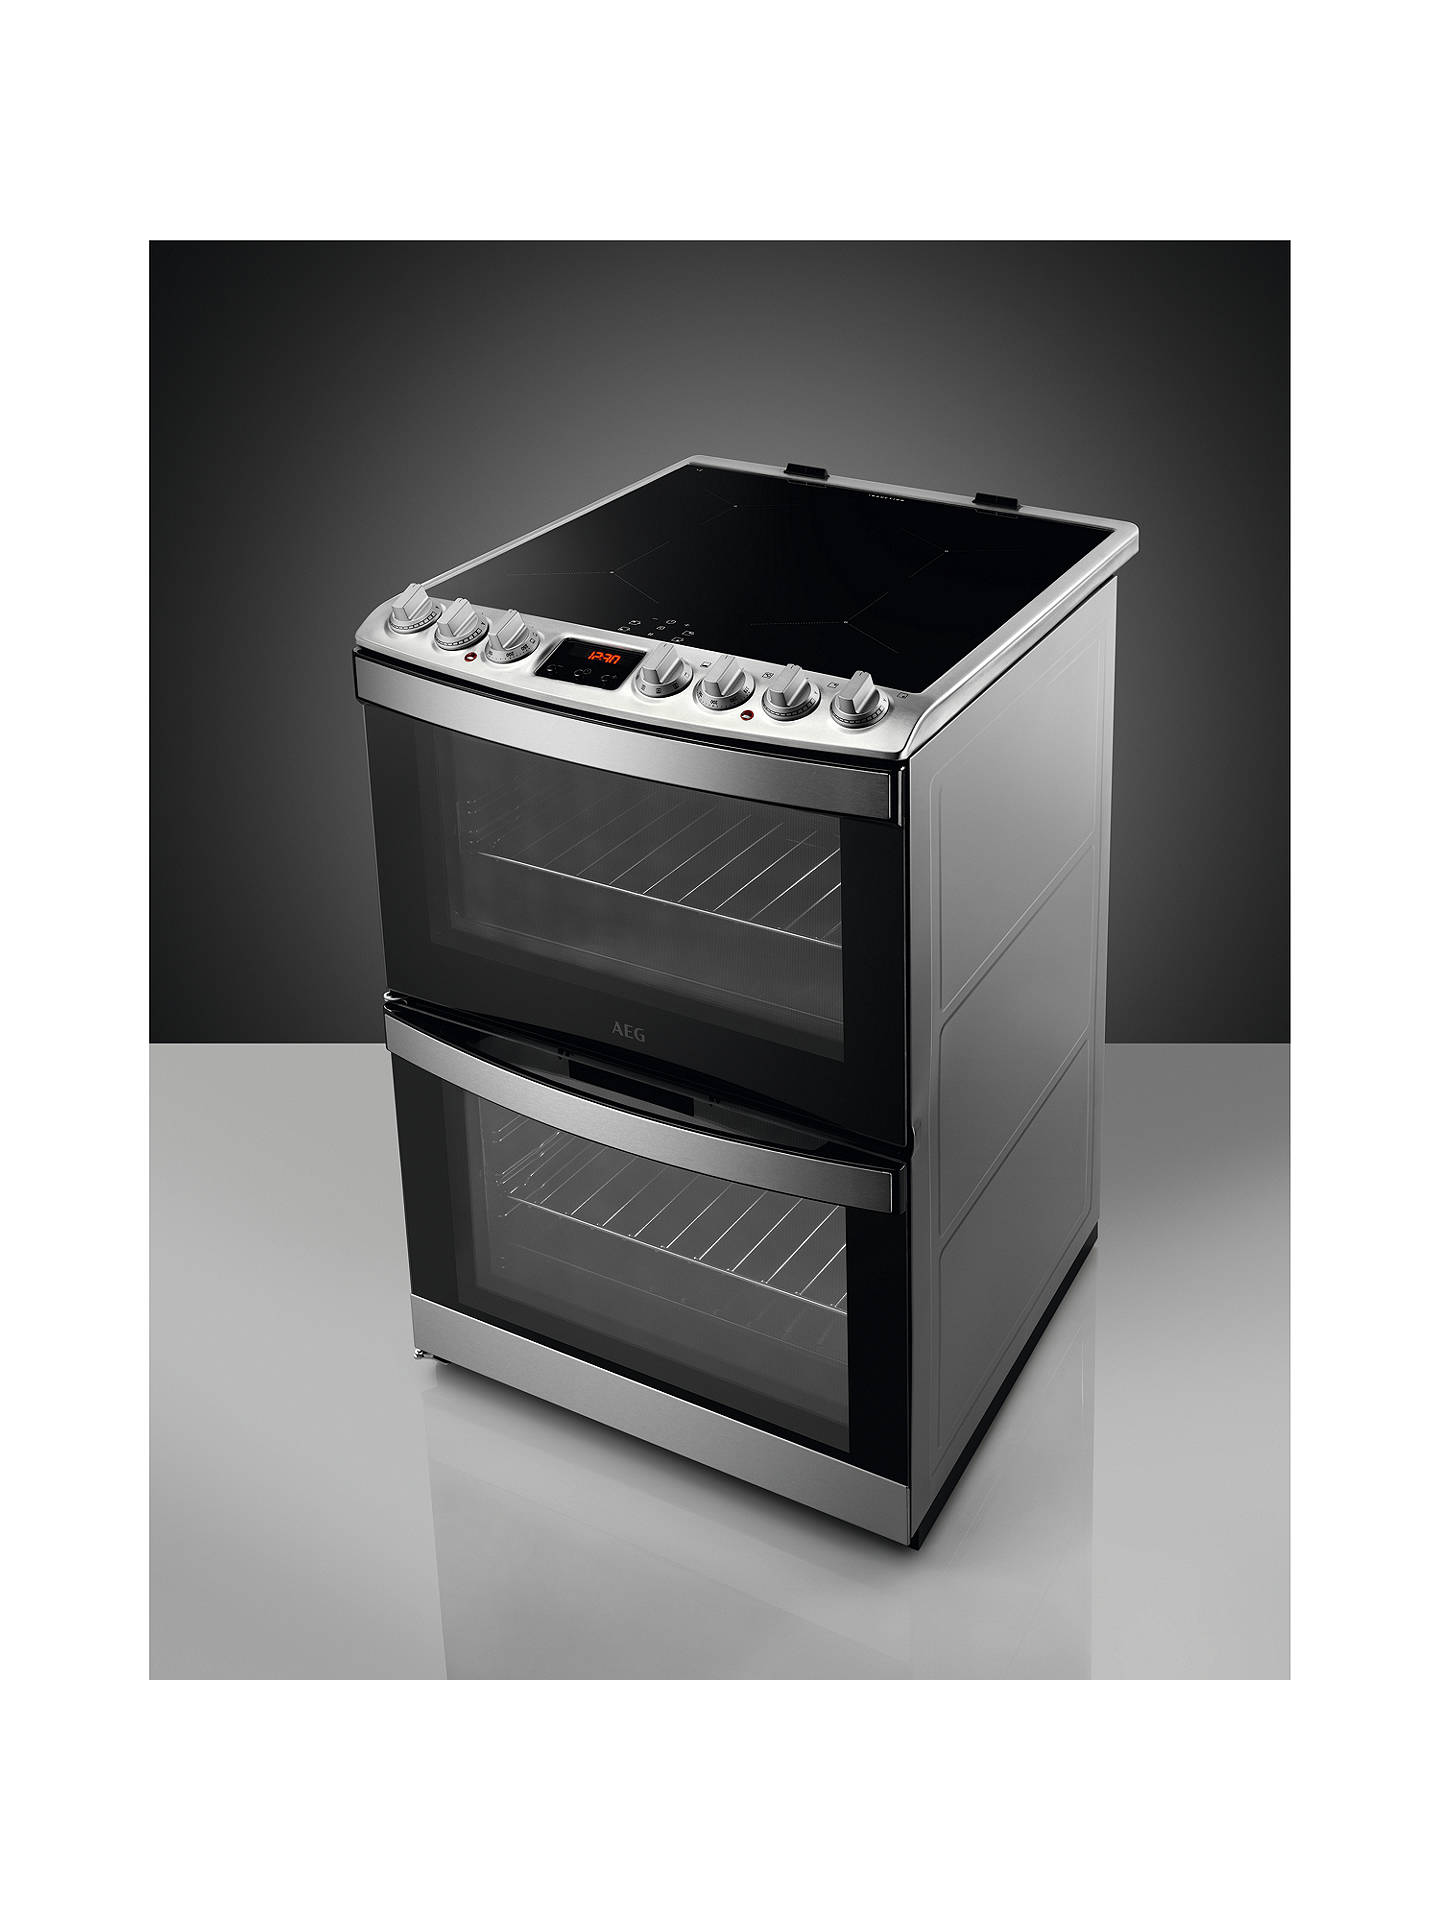 BuyAEG CIB6731ACM Electric Cooker, A Energy Rating, Stainless Steel Online at johnlewis.com